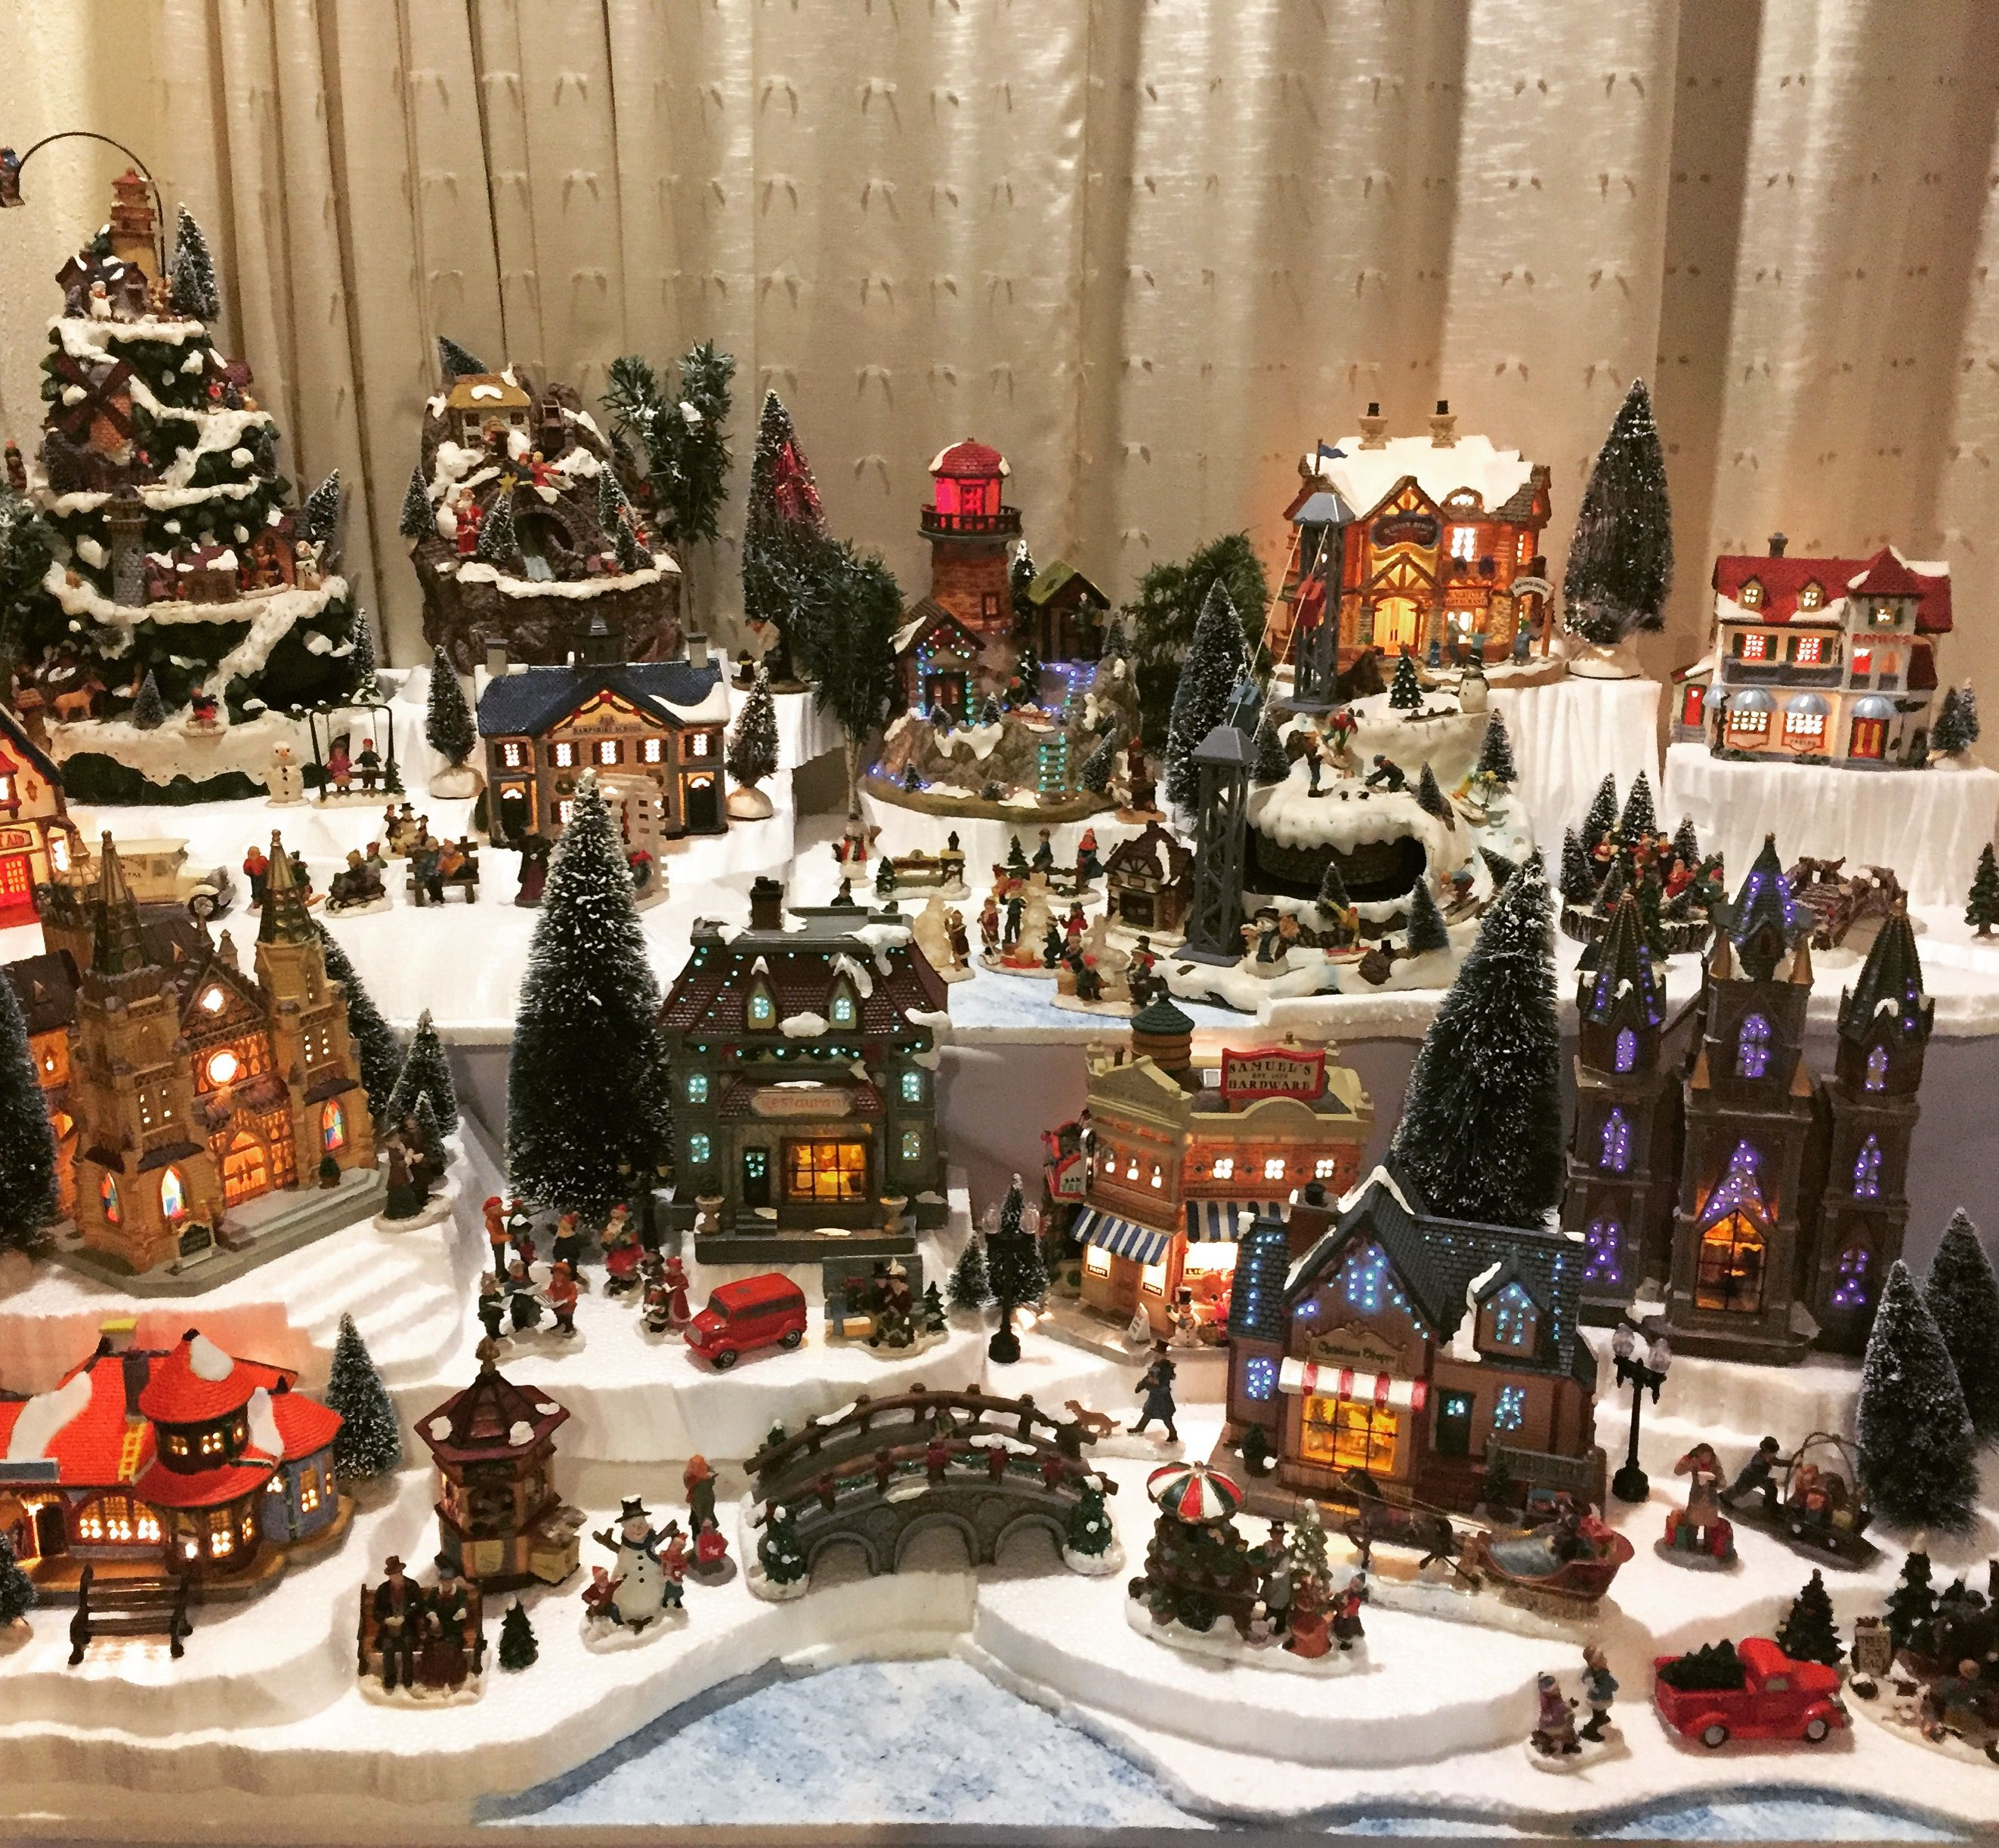 Christmas Village Sets.2016 Christmas Village Display Just About Done Enjoyed